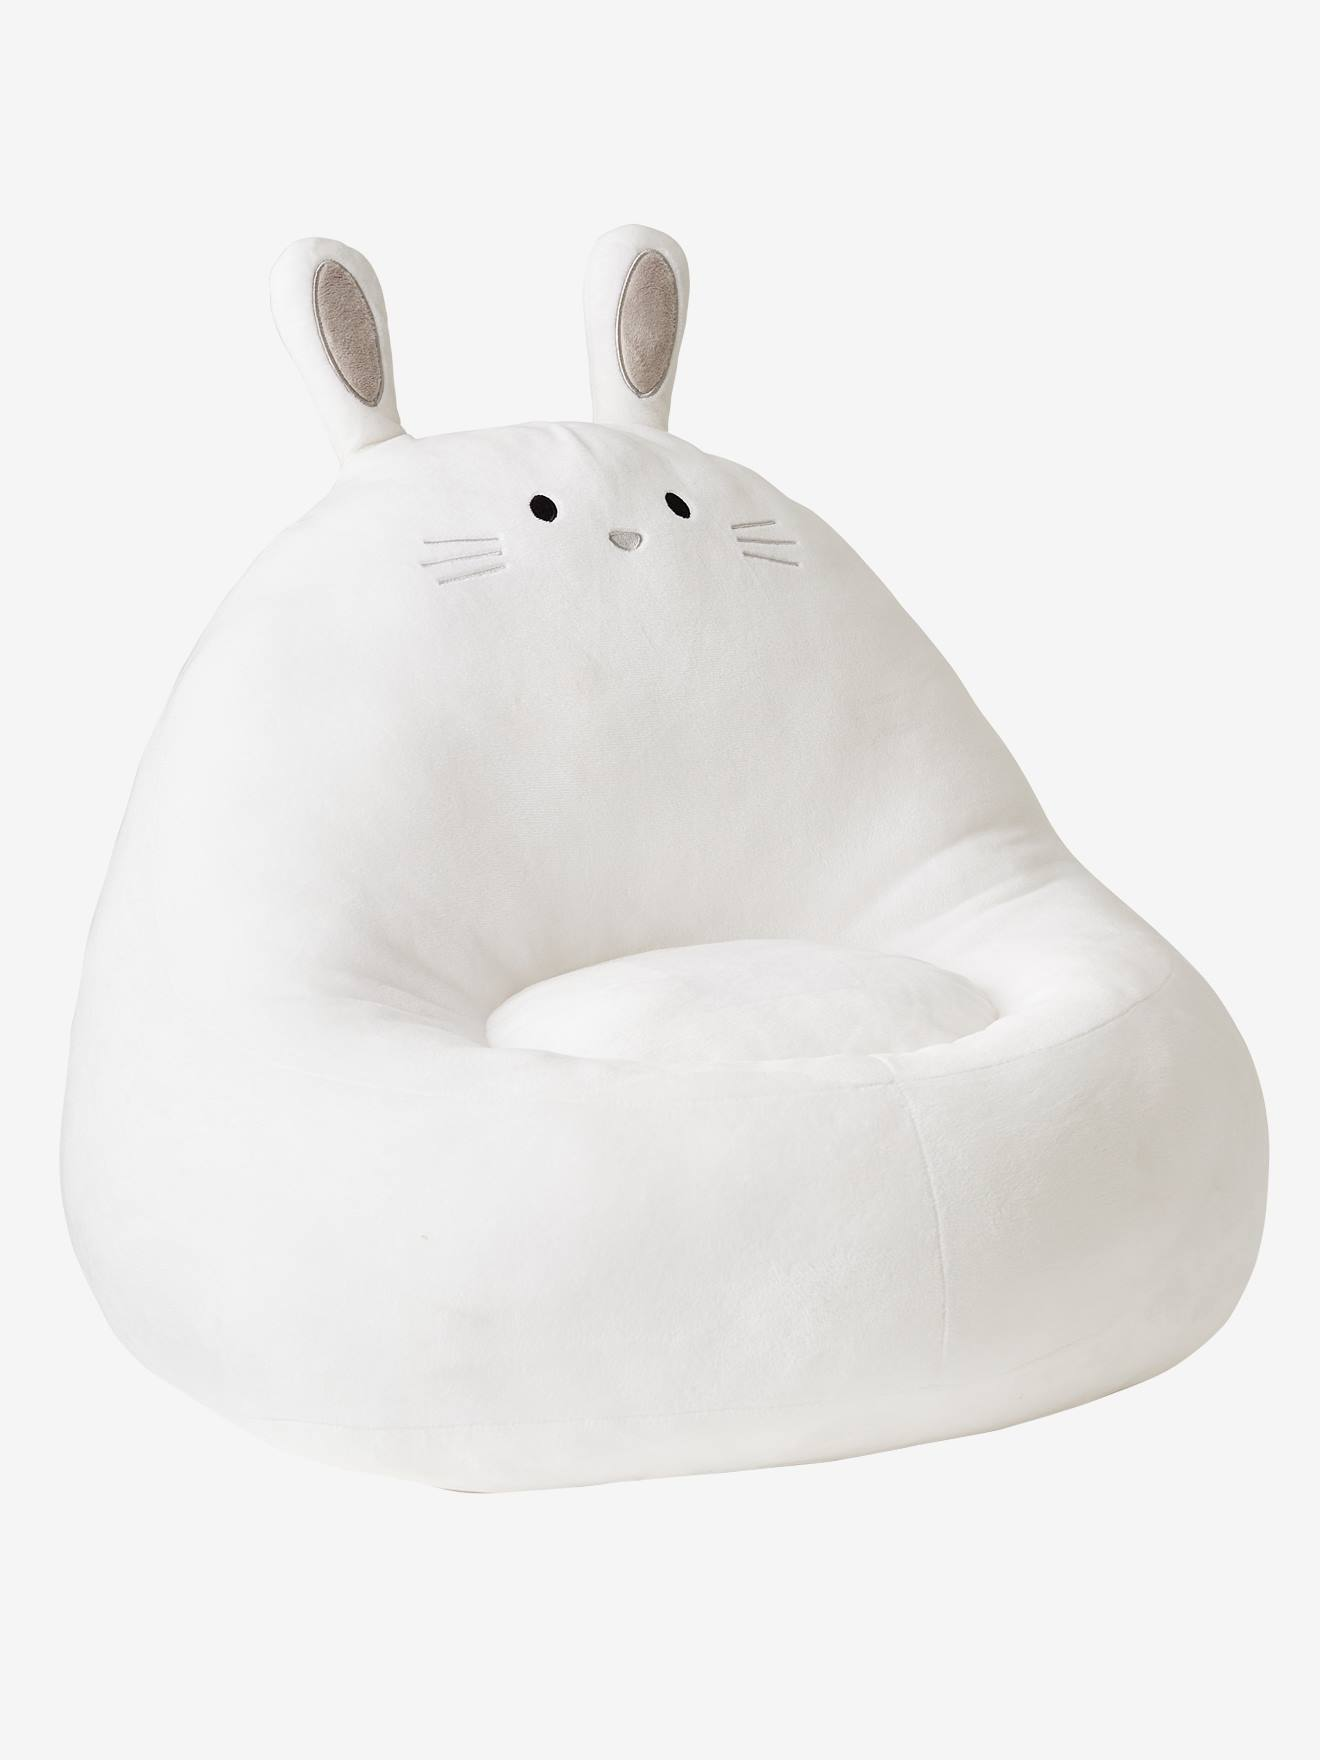 Rabbit Armchair with Faux Fur white light solid, Bedroom Furniture & Storage | Vertbaudet